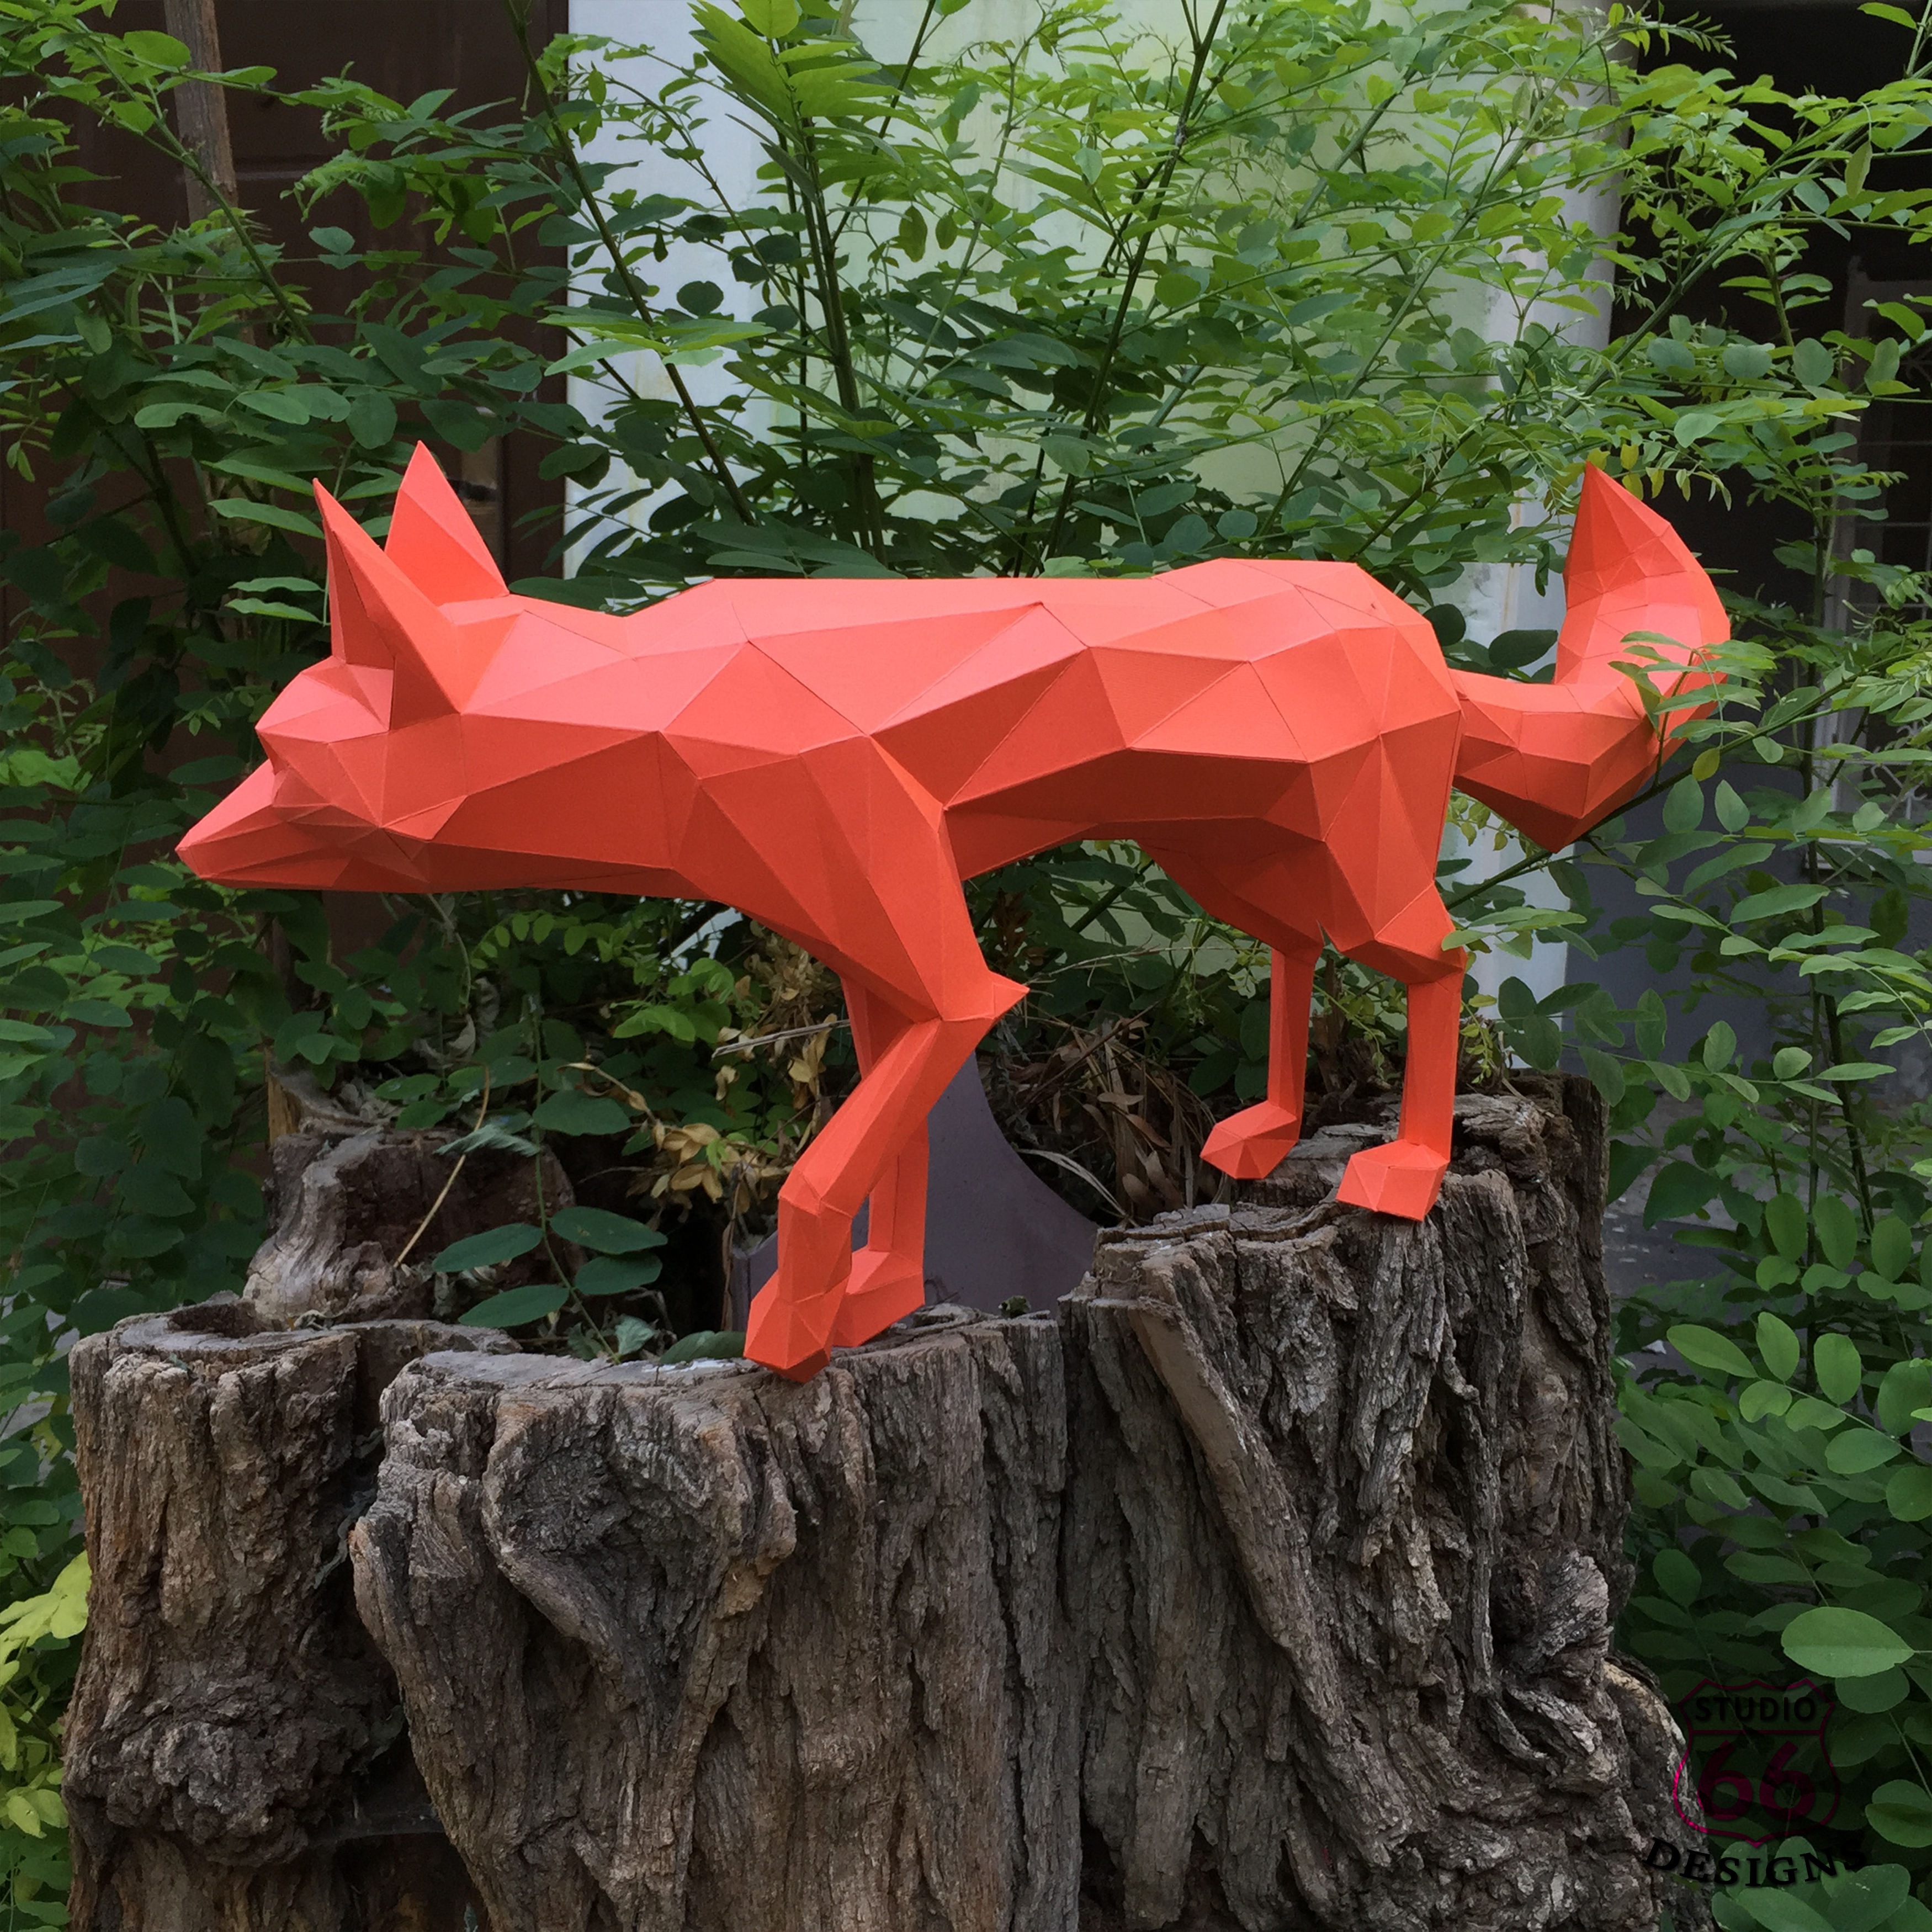 DIY Fox Papercraft, Red Fox, Fox Tail, Fox and Dogs, Fox Sculpture, Animal Trophy, Paper Animals, Home Decor, 3D origami, wild nature, foxy example image 4